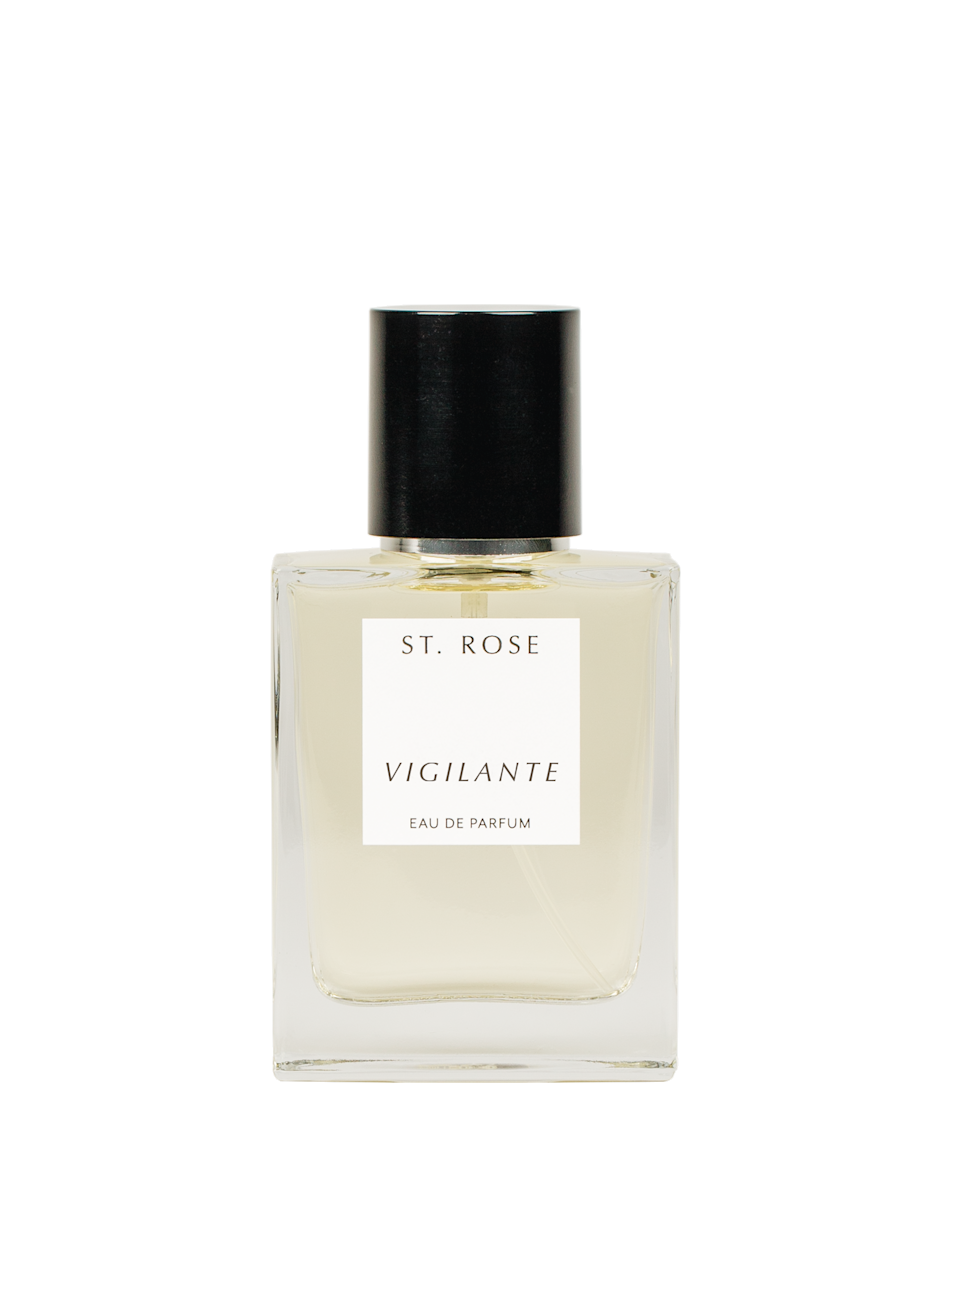 "<p><strong>ST. ROSE</strong></p><p>st-rose.com</p><p><strong>$165.00</strong></p><p><a href=""https://www.st-rose.com/products/vigilante-eau-de-parfum"" rel=""nofollow noopener"" target=""_blank"" data-ylk=""slk:SHOP IT"" class=""link rapid-noclick-resp"">SHOP IT</a></p><p>Even at first glance, there's something alluring about this fragrance. The devious name. The simplicity of the bottle. Take a whiff, and you'll probably fall in love. With hints of bergamot, ylang ylang, tobacco, and cedarwood, there's nothing about this perfume that isn't sexy. Spritz it on to carry that mysterious energy into 2021.</p>"